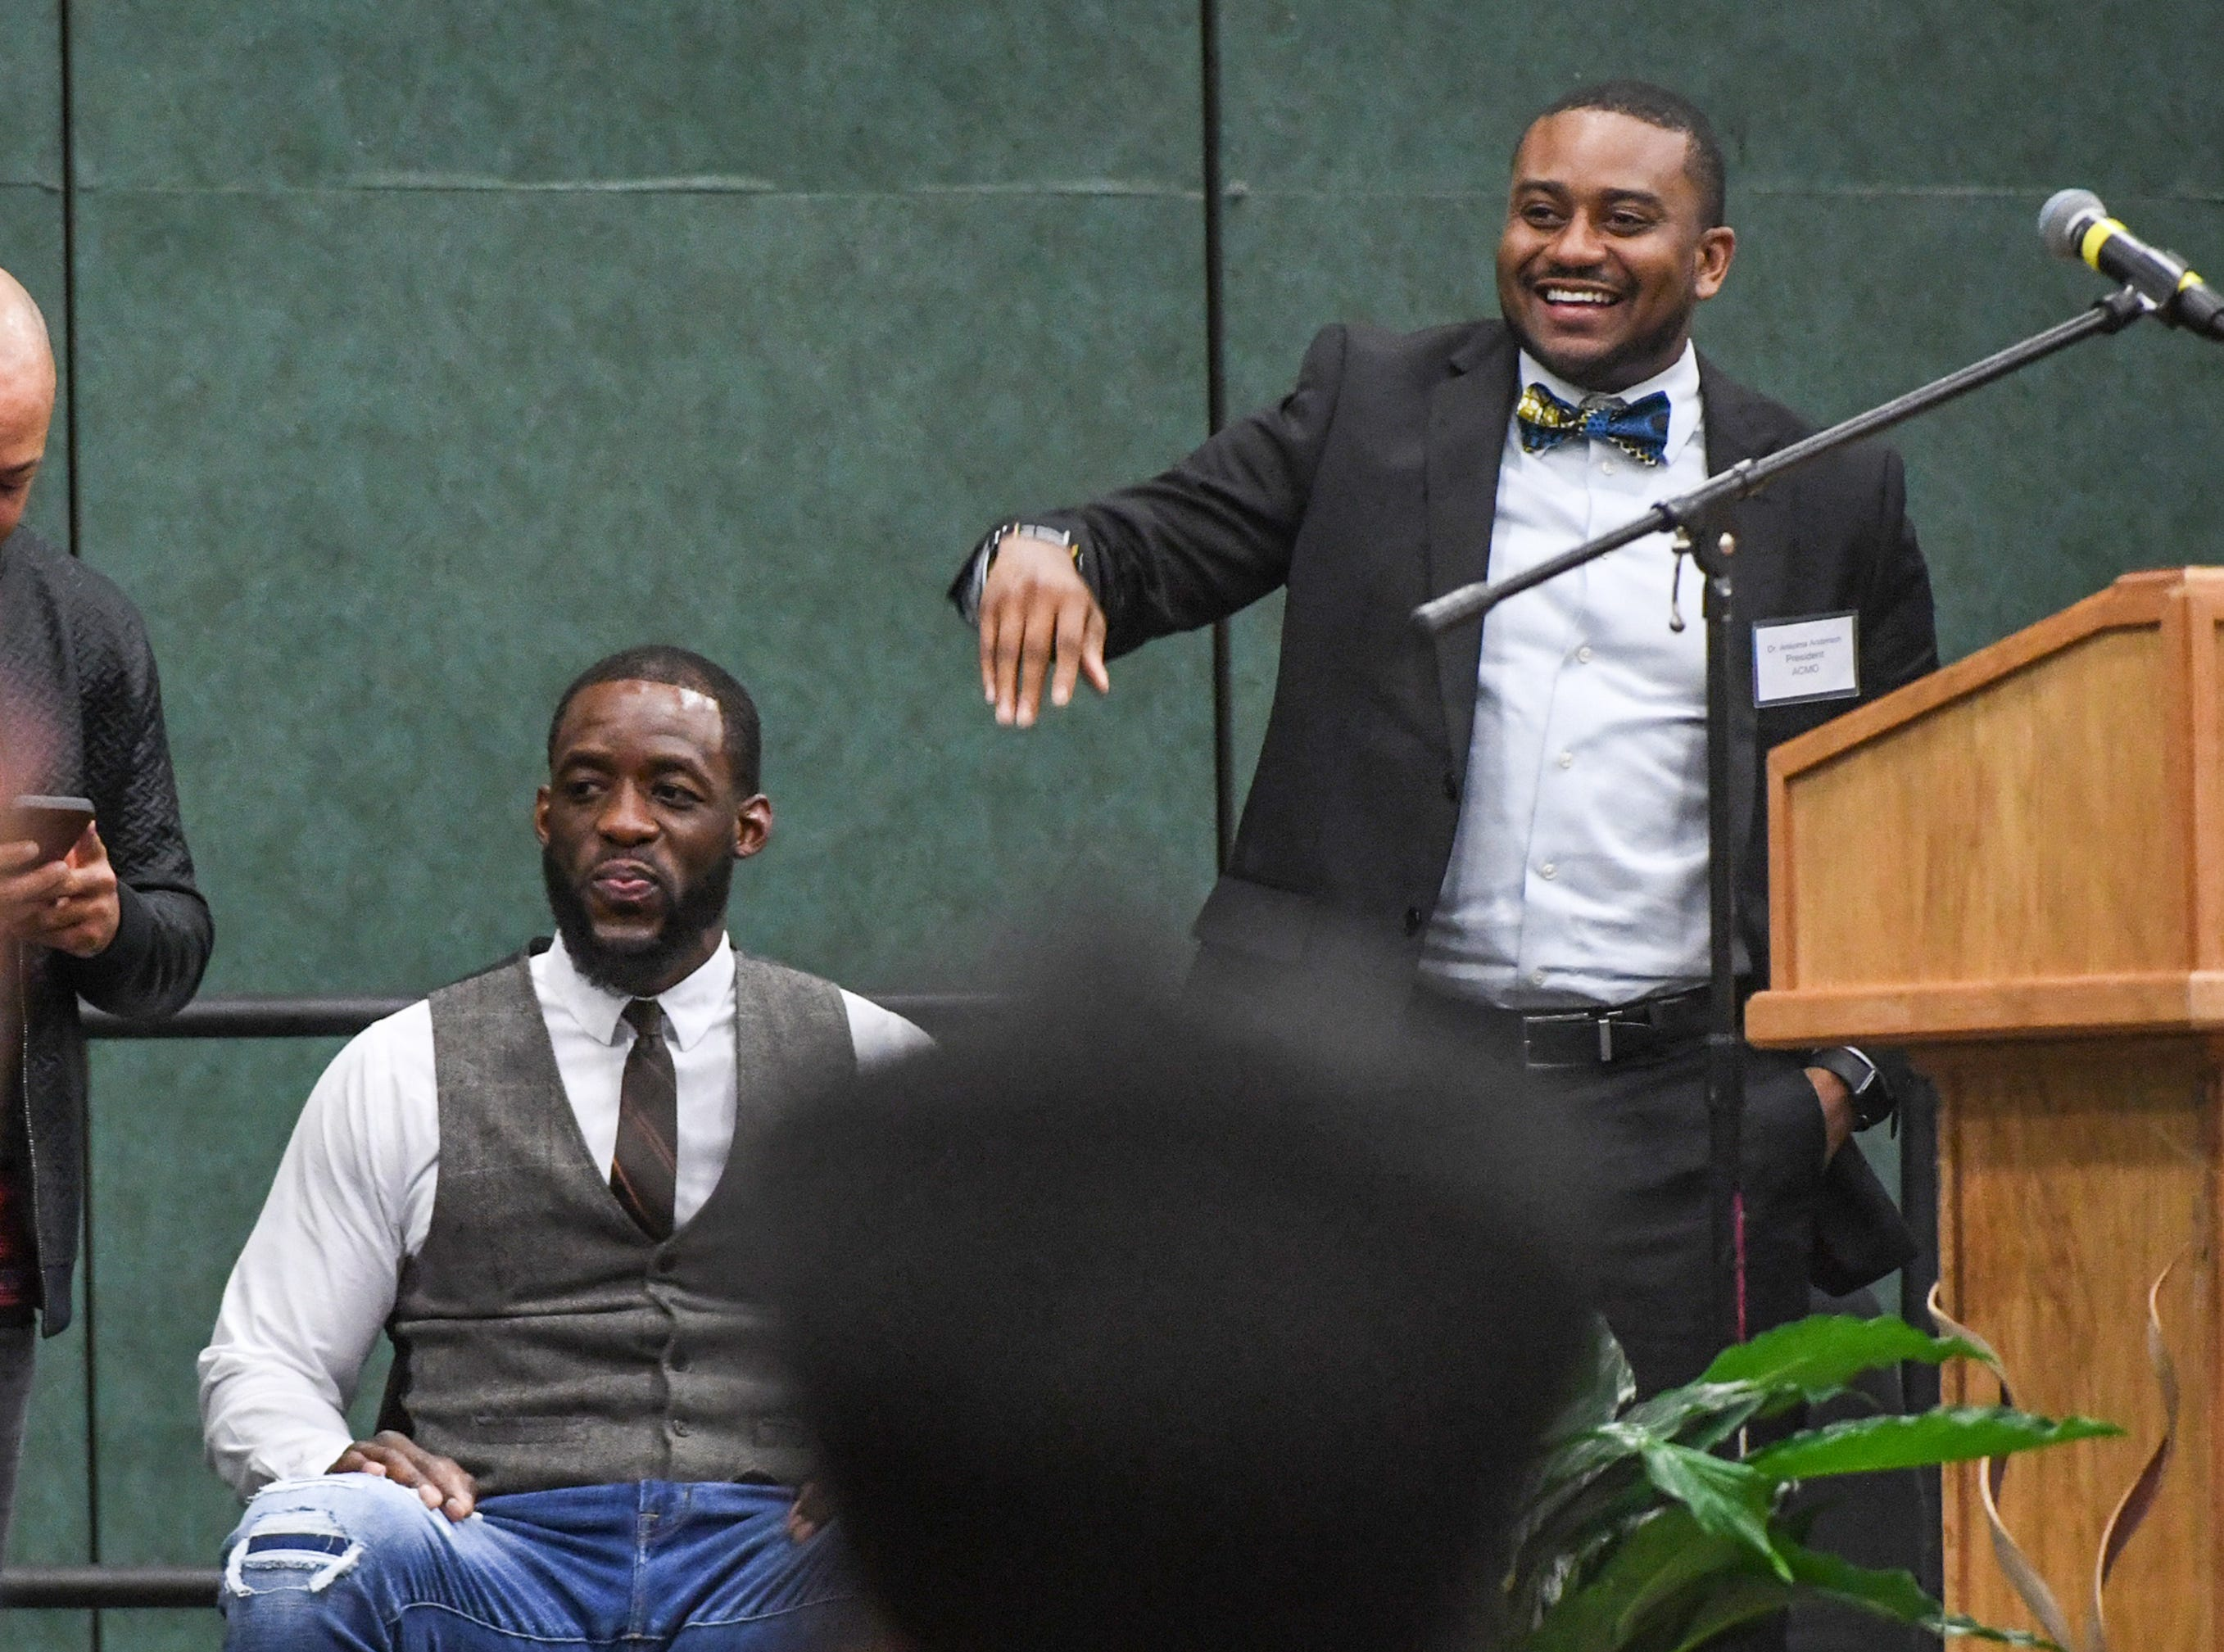 Cyrus Birch of Charleston, left, an stunt performer as a Jabari warrior in Marvel Studio's Black Panther, and Dr. Ankoma Anderson, right, of Welfare Baptist Church, during the Anderson County Martin Luther King, Jr. Celebration in Anderson January 21, 2019.